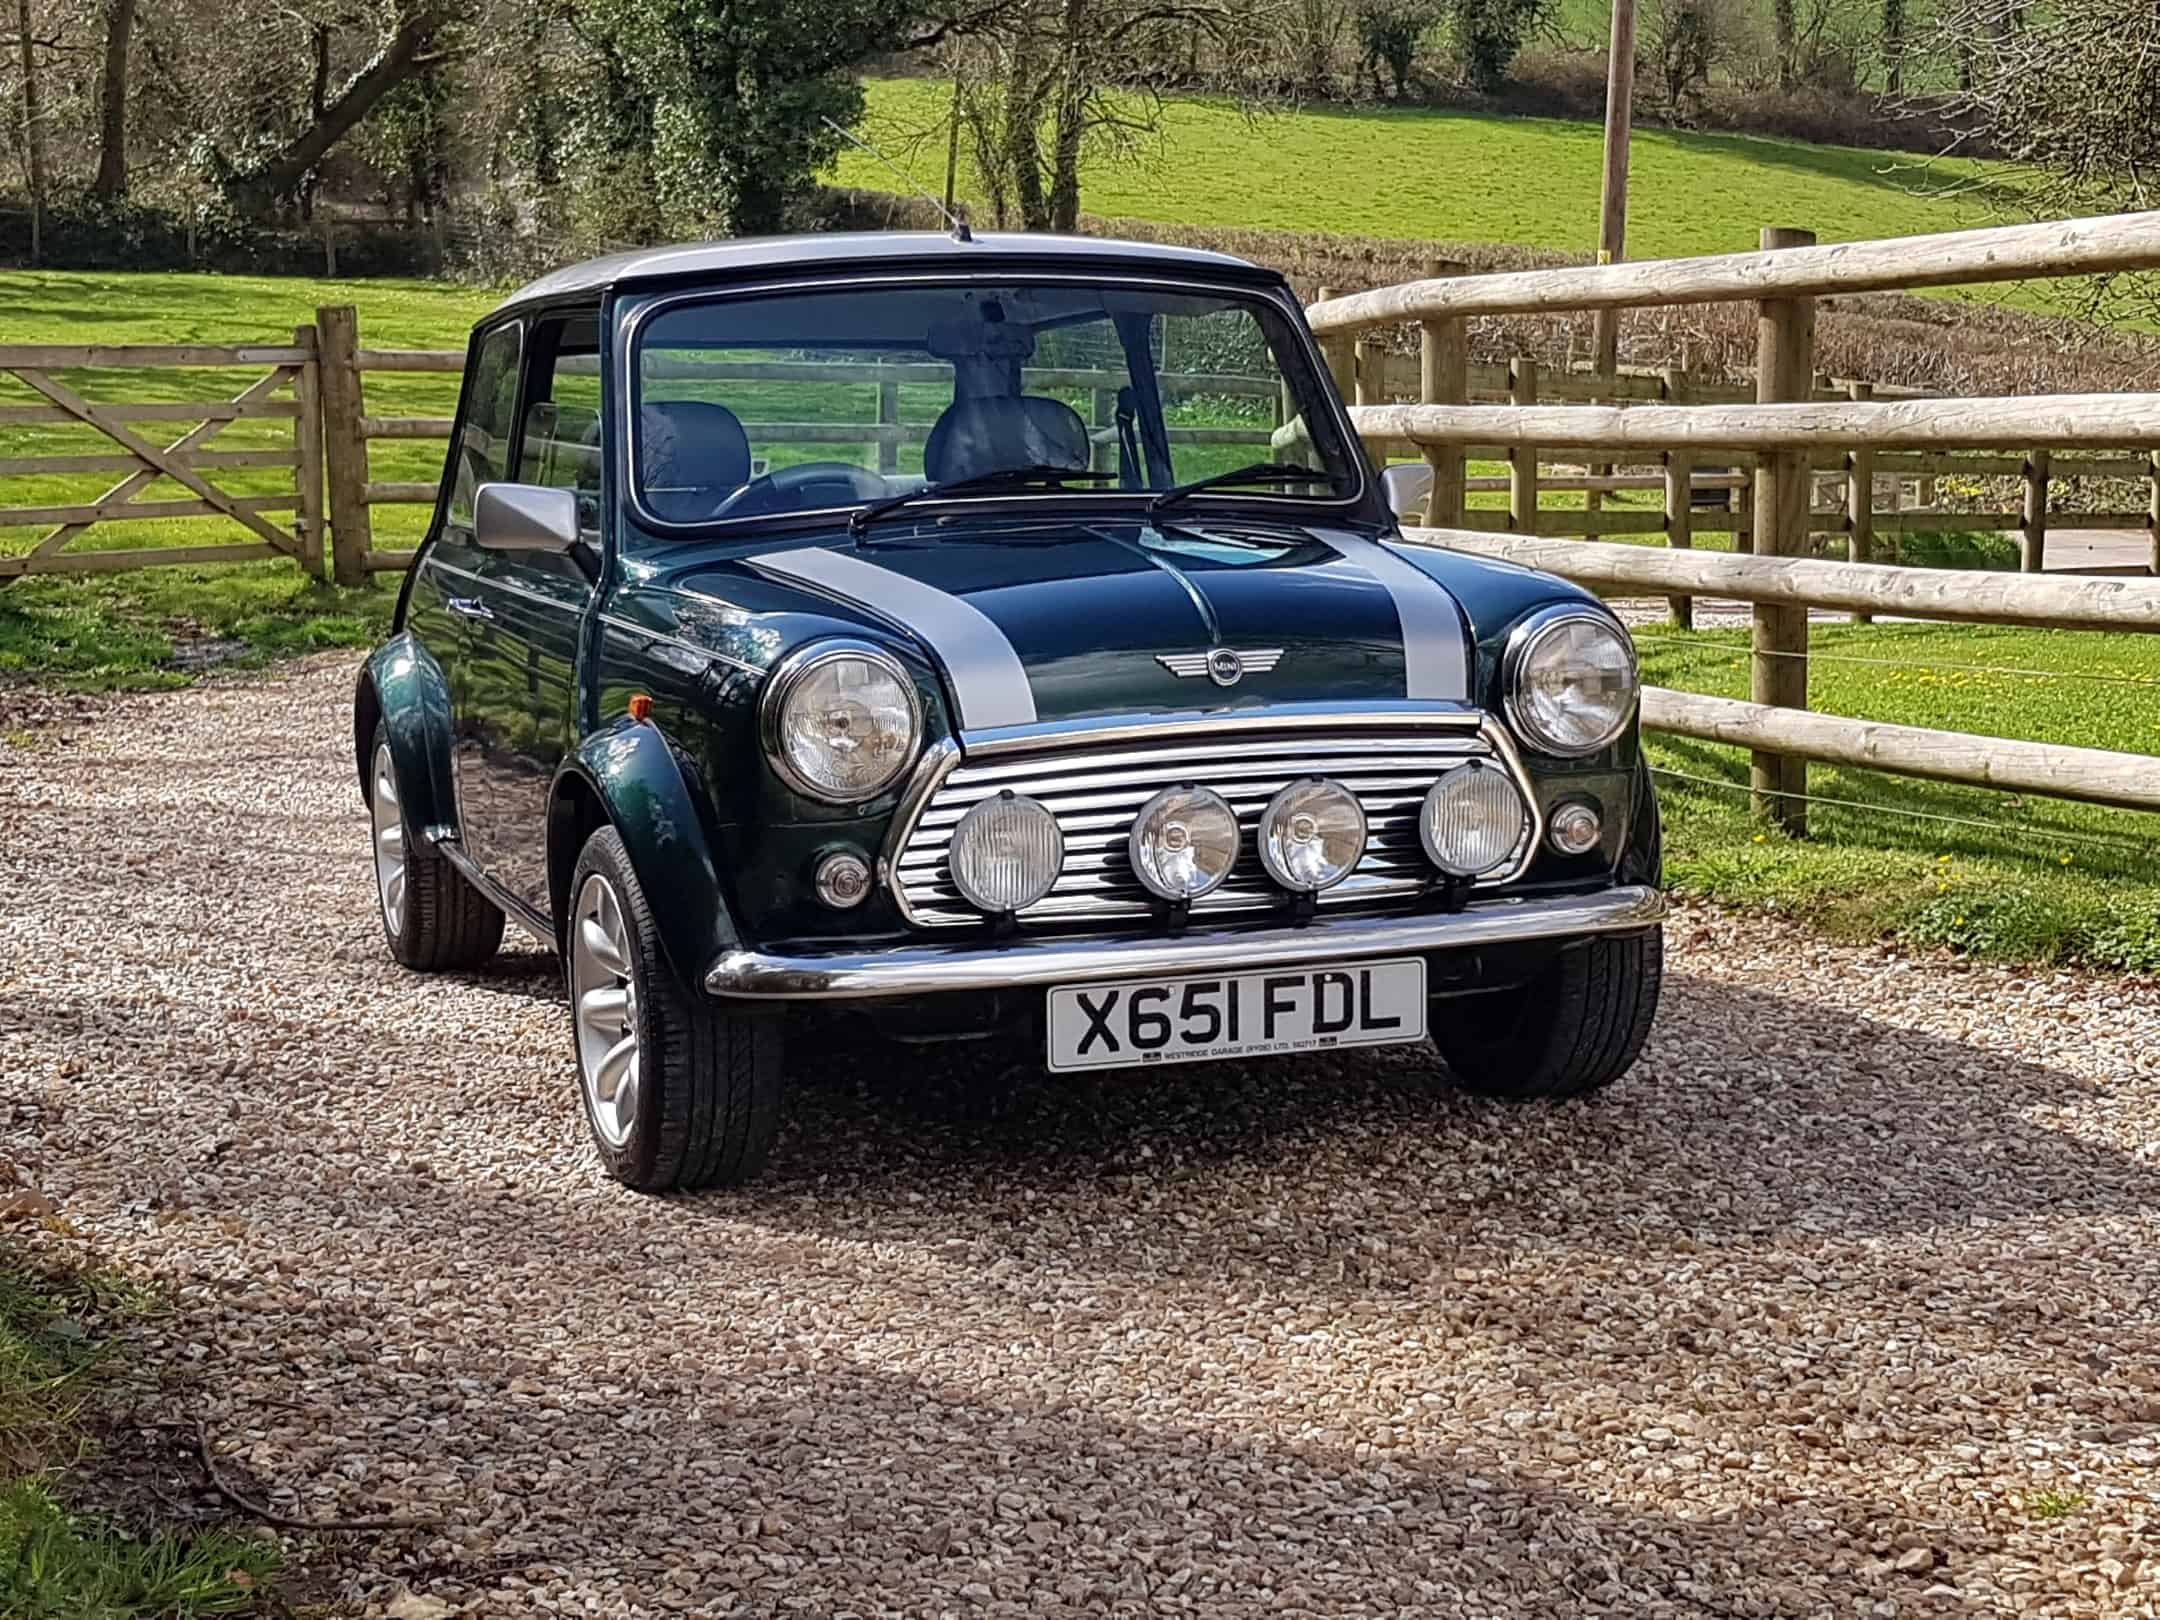 ** NOW SOLD ** 2000 Rover Mini Cooper Sport On Just 27310 Miles From New